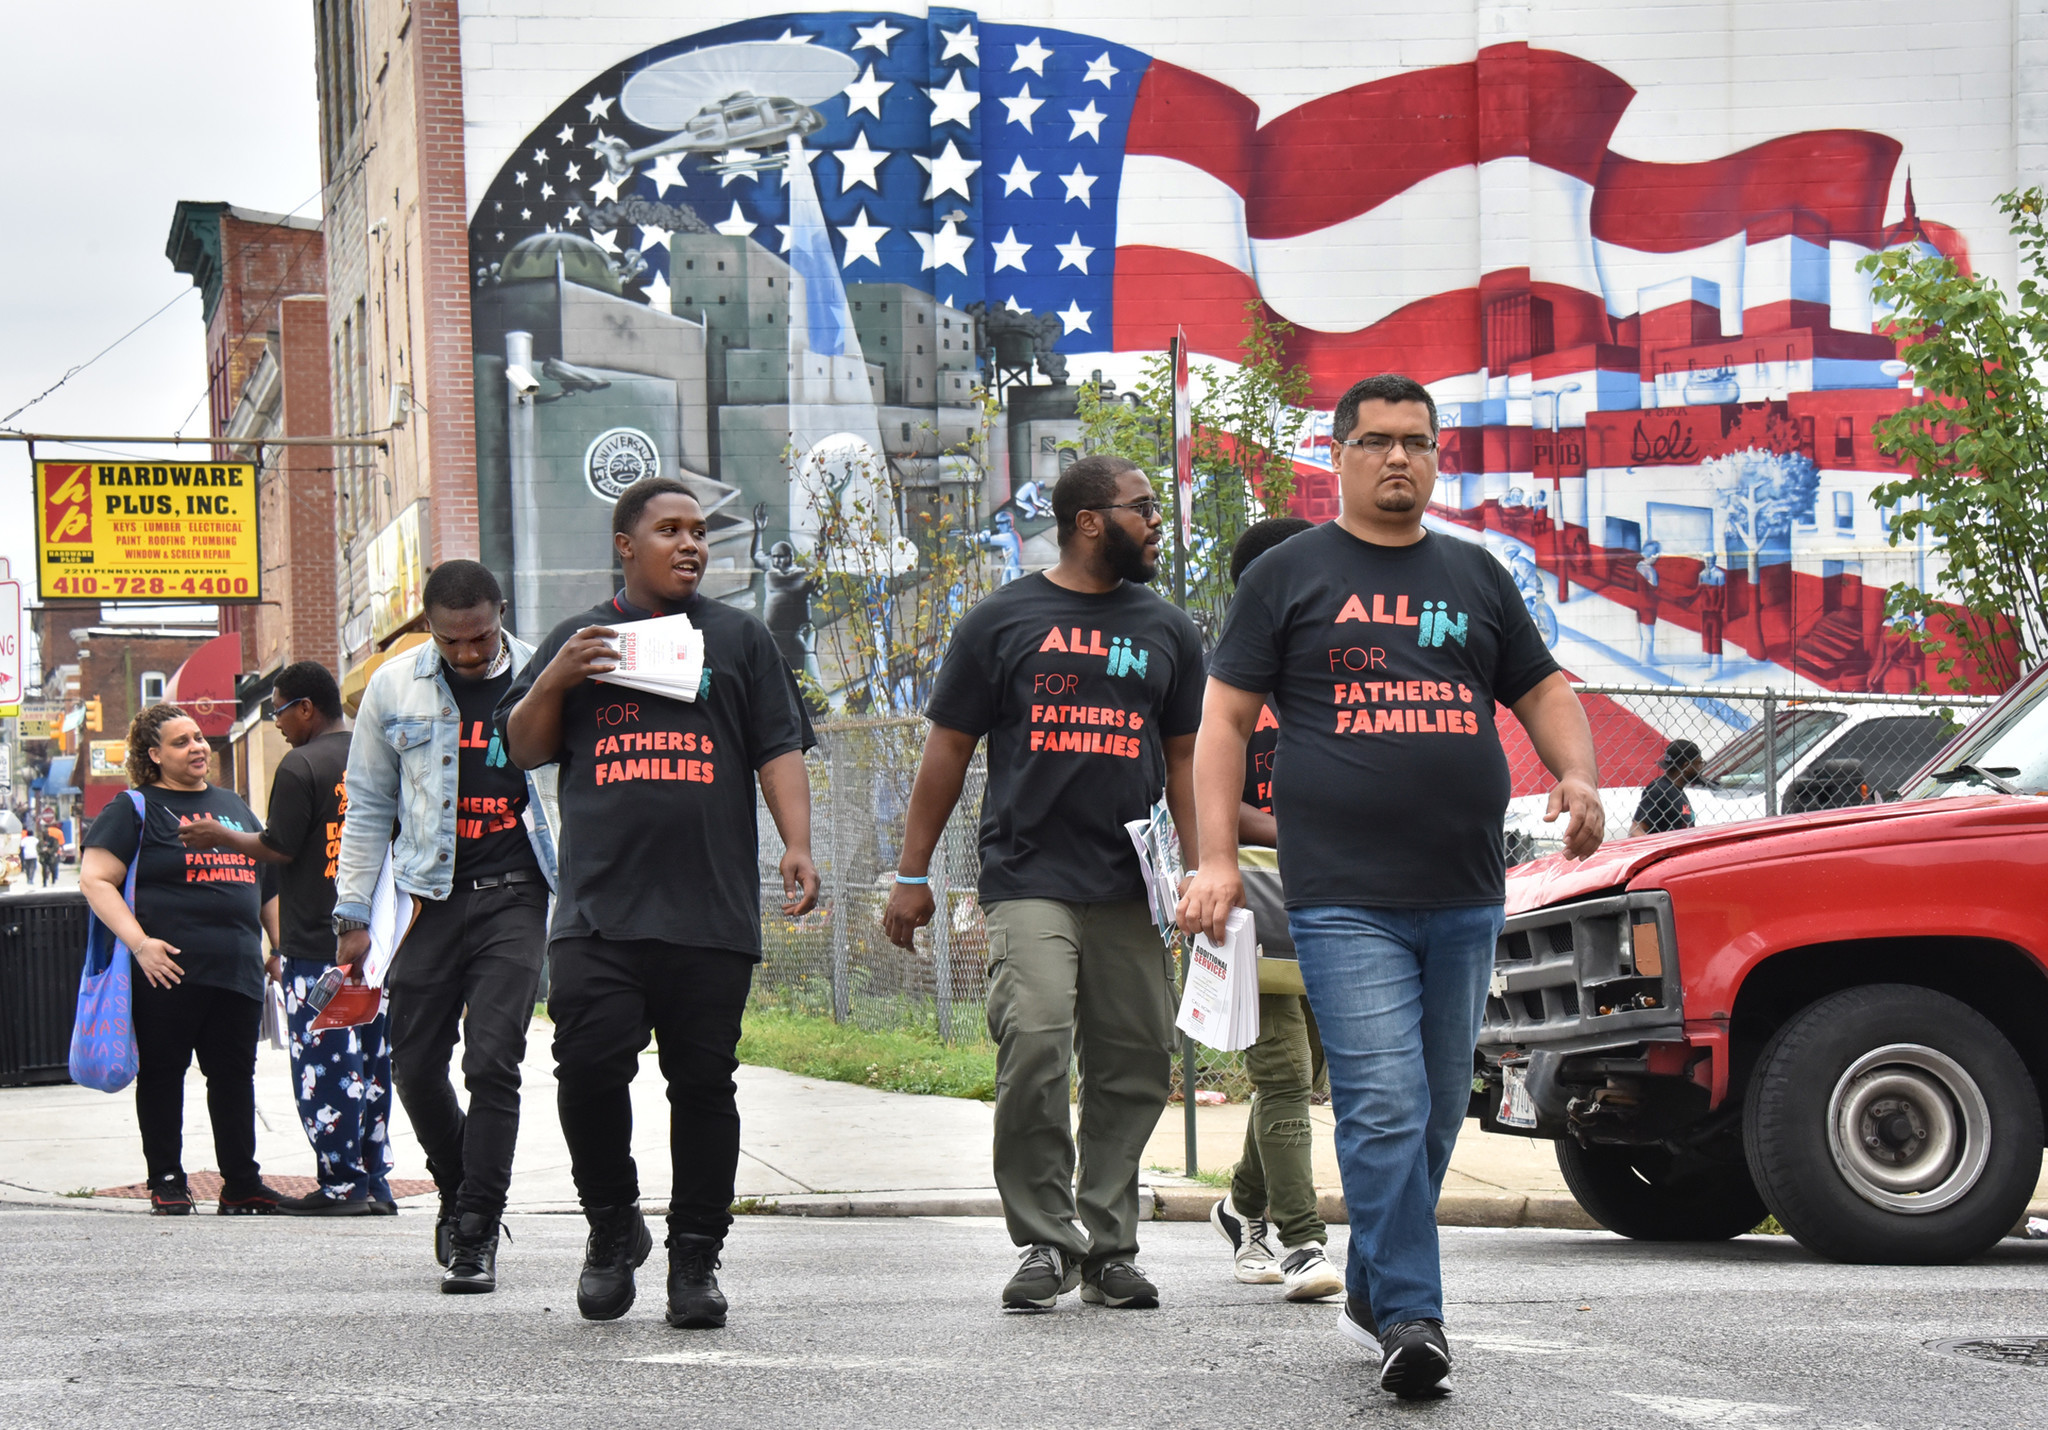 'That's where the problem starts — home': People march in West Baltimore for family restoration